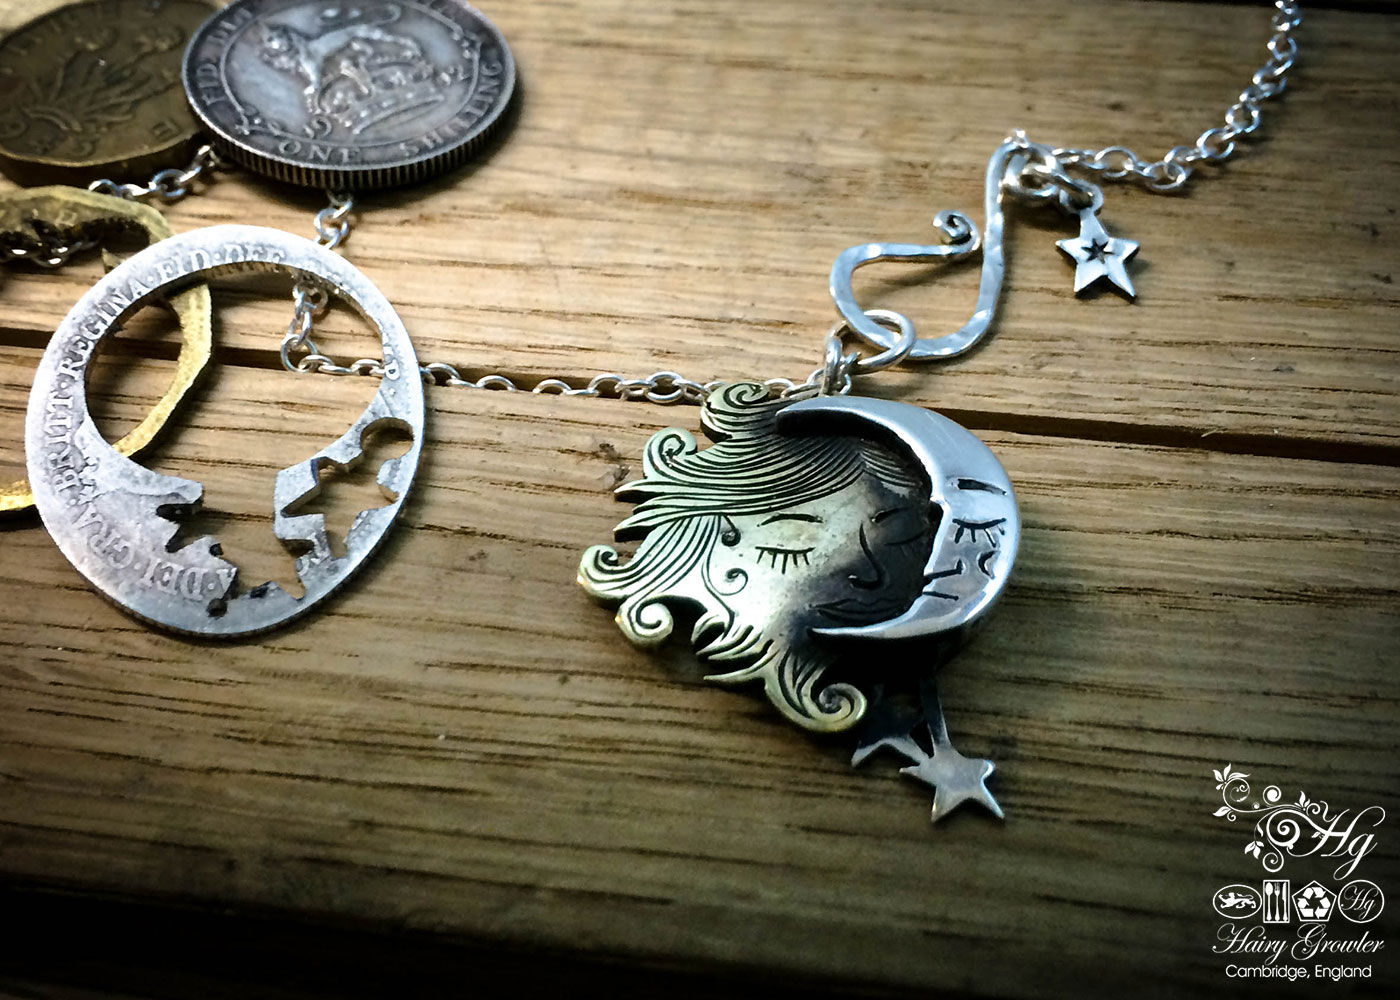 Hand made and repurposed silver coins made into a beautiful artisan sun and moon lovers necklace